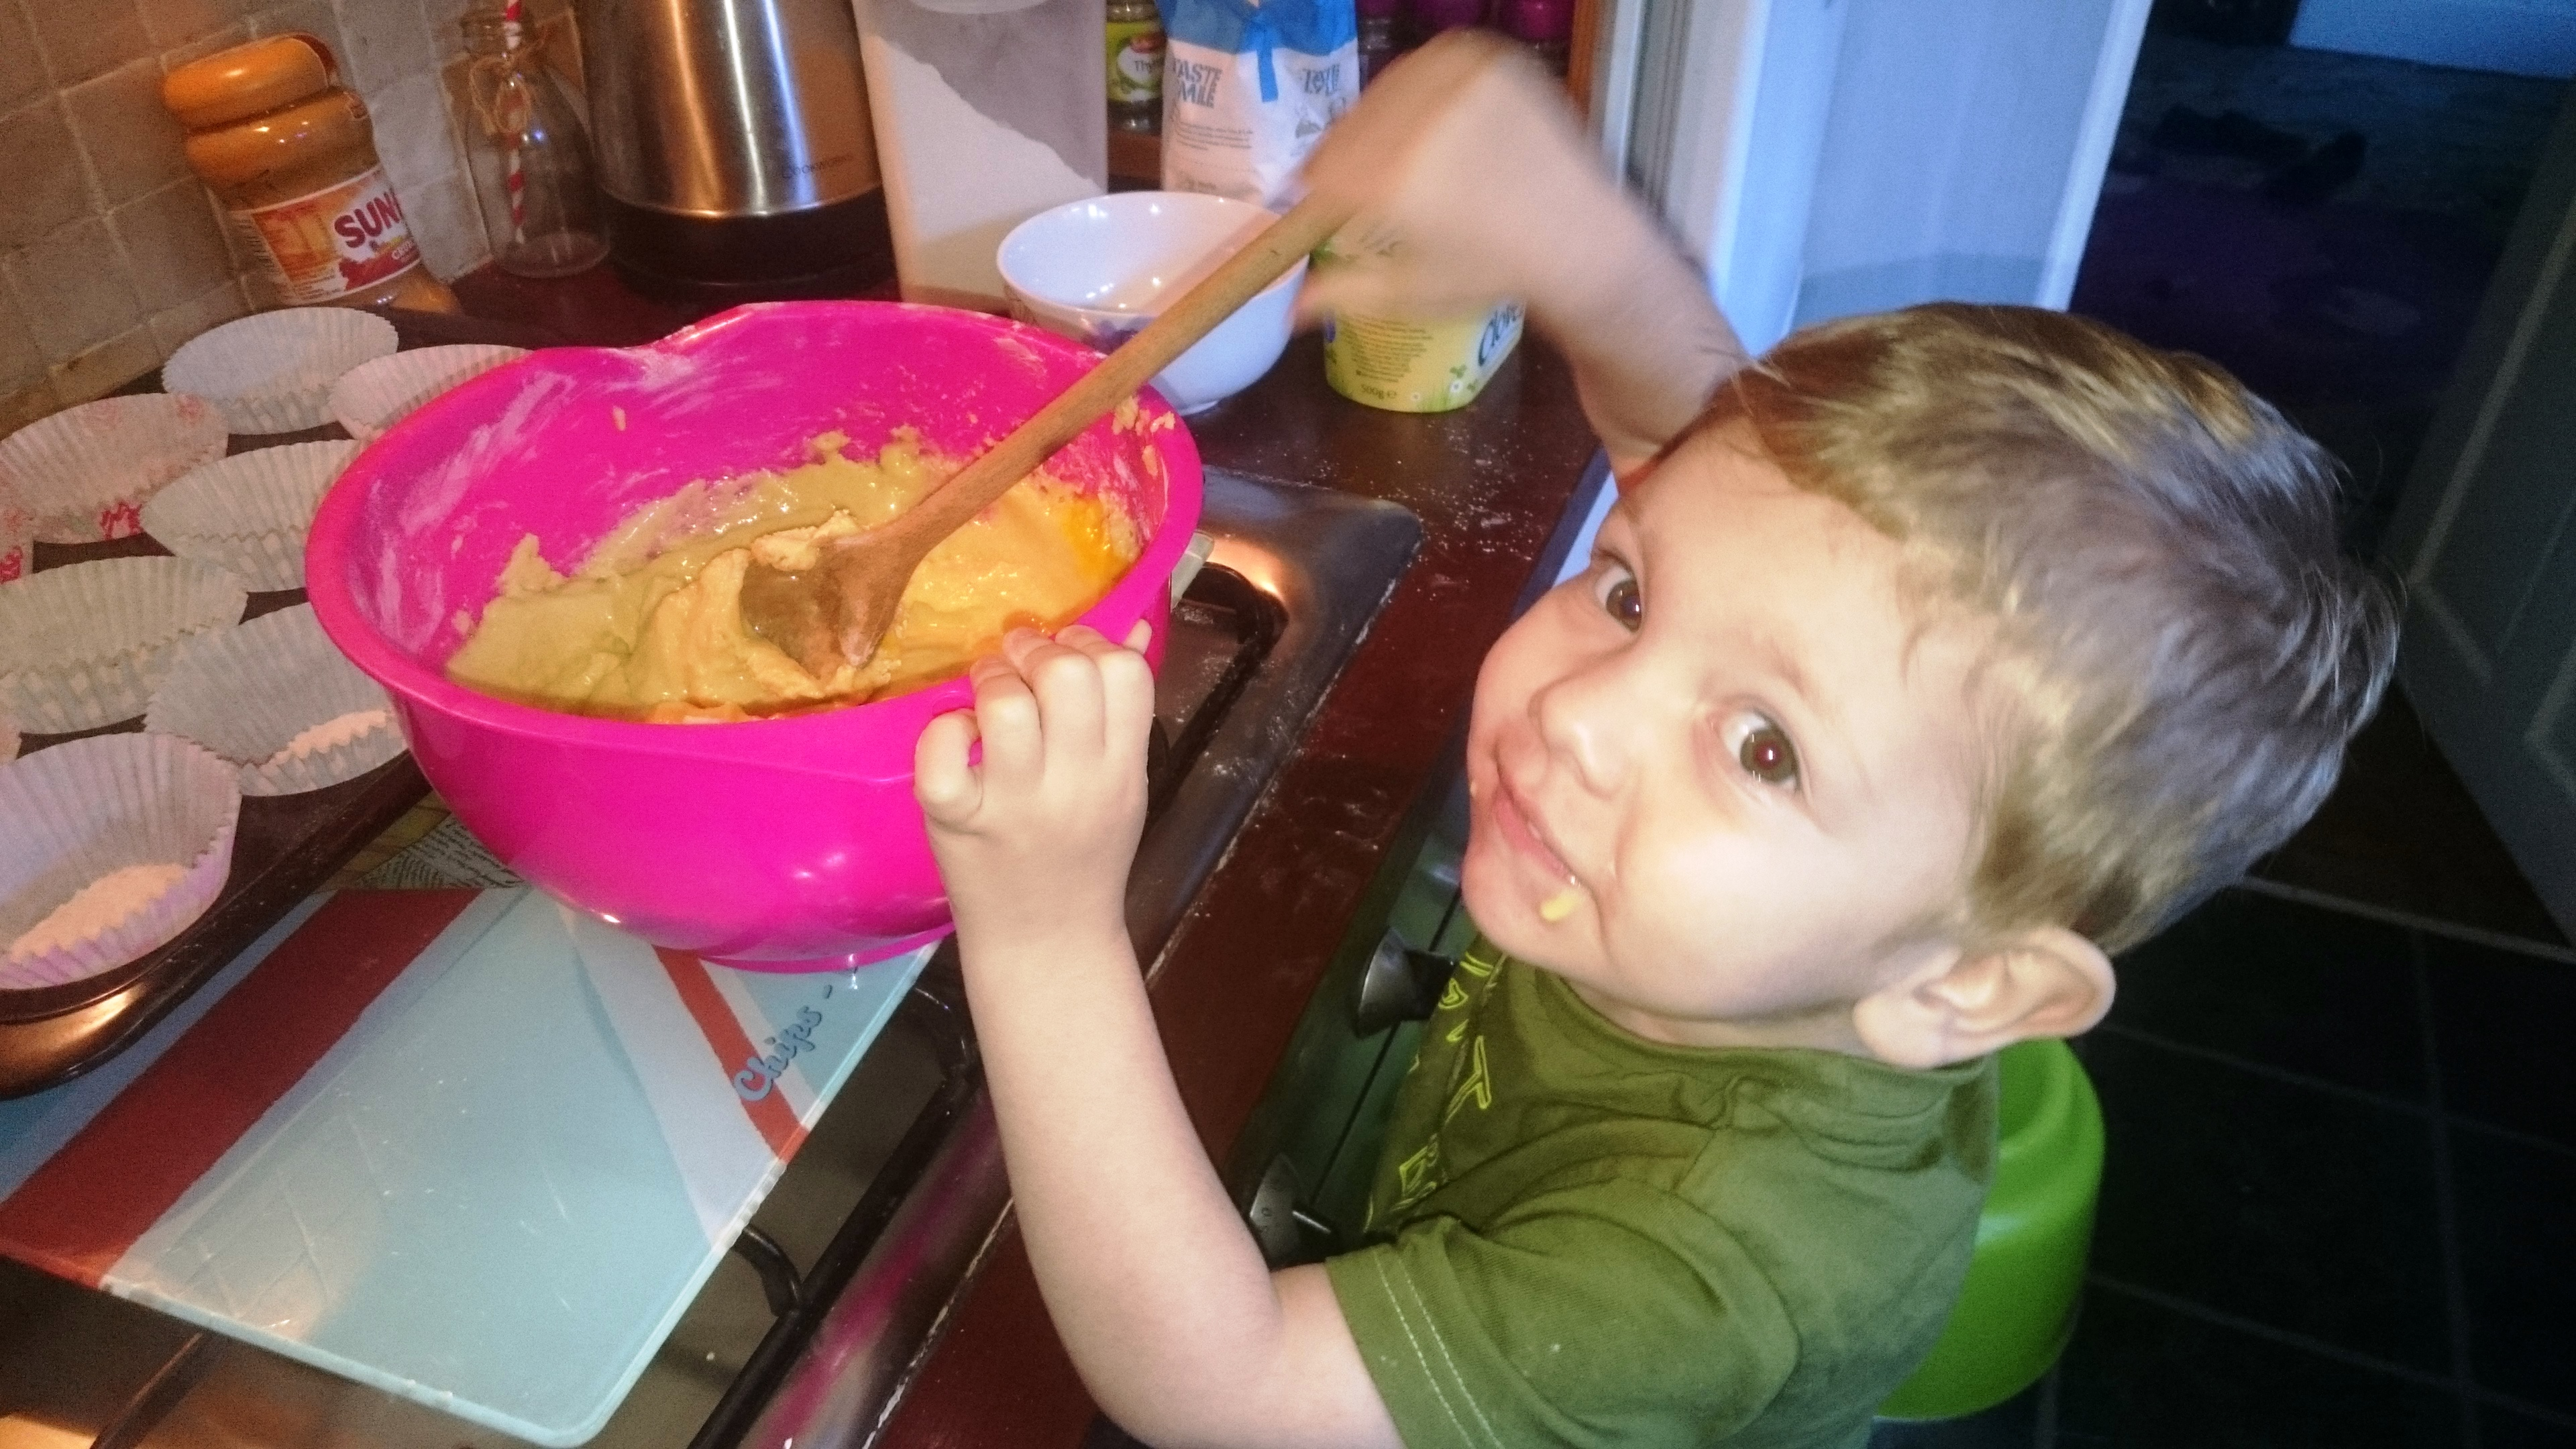 Mixing the cake